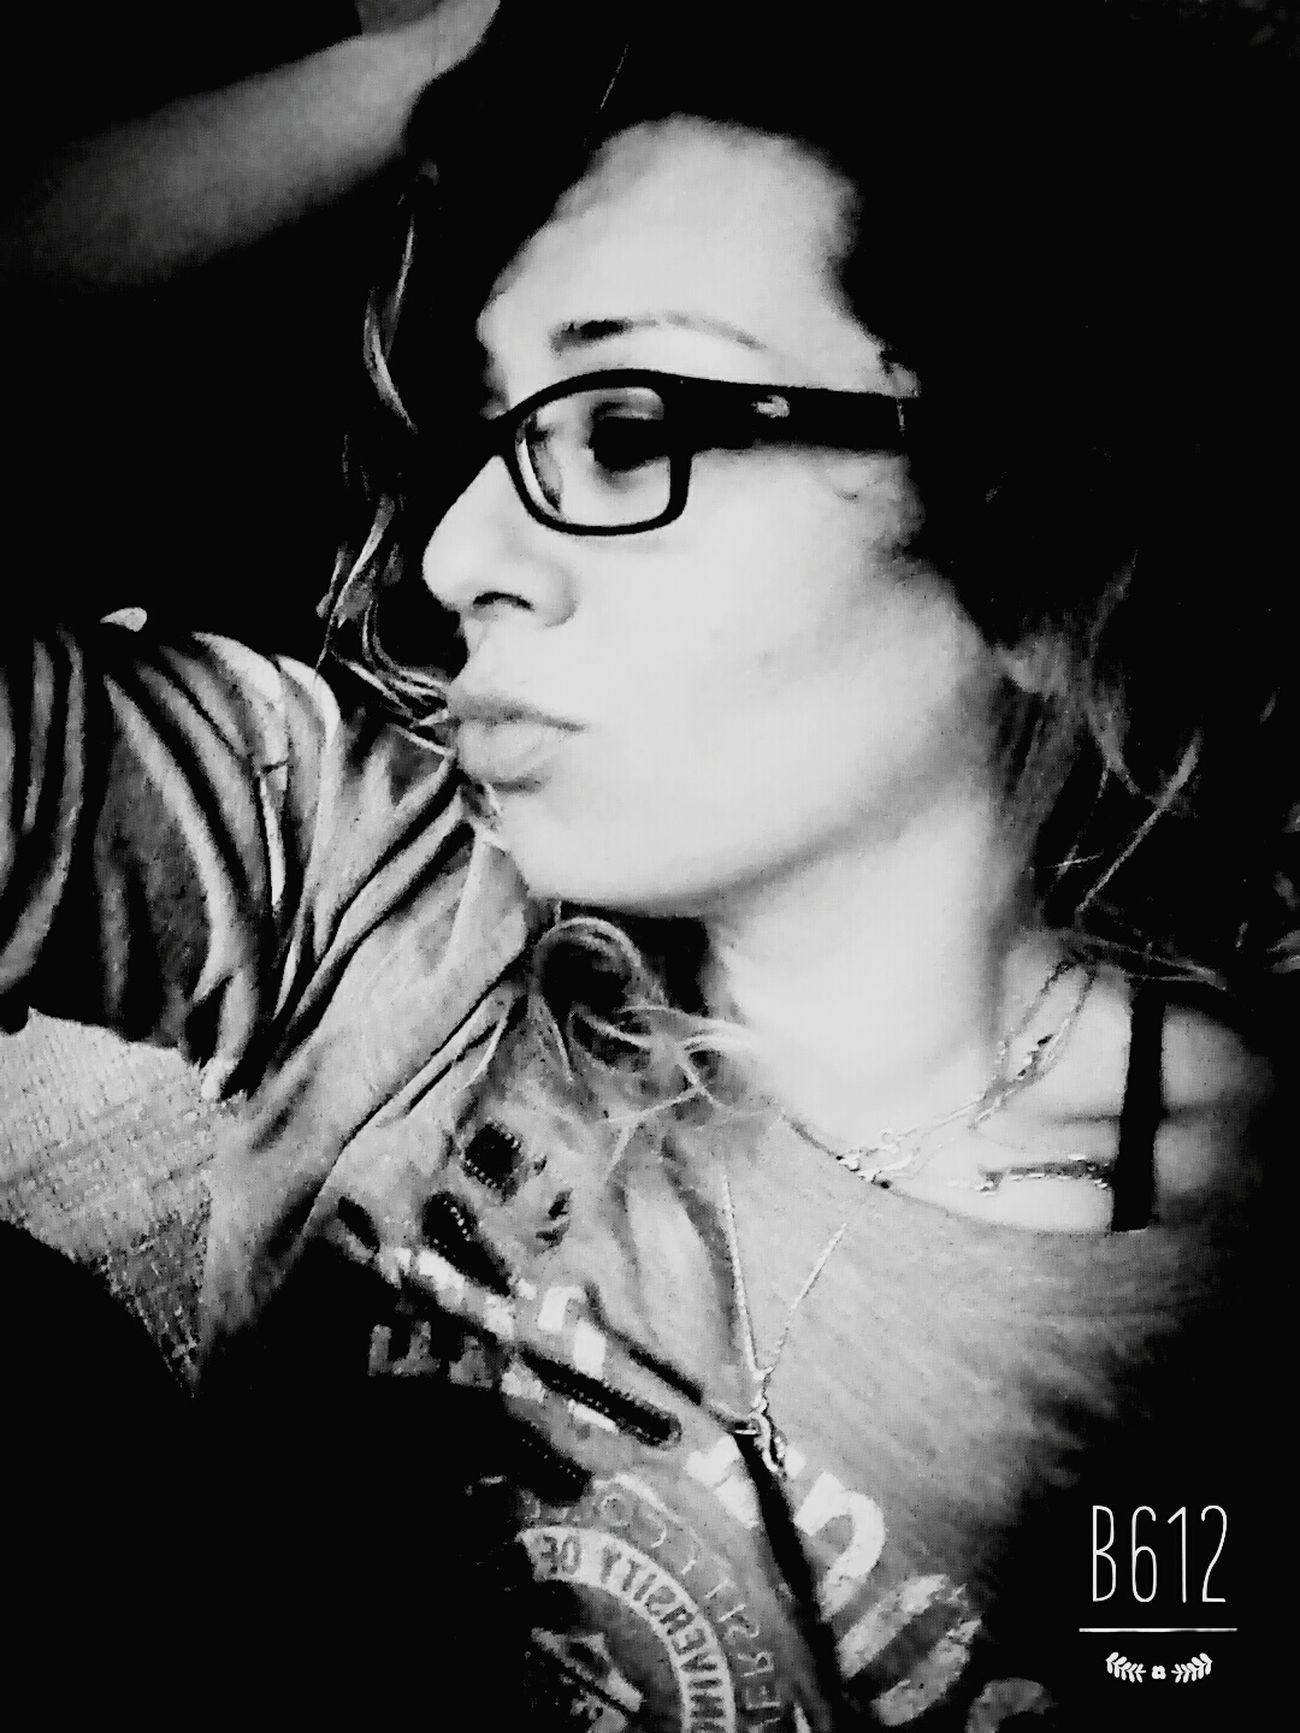 . Taking Photos Enjoying Life Blackandwhite Love ♥ Thinking Sorry EyeEm Bewithyou